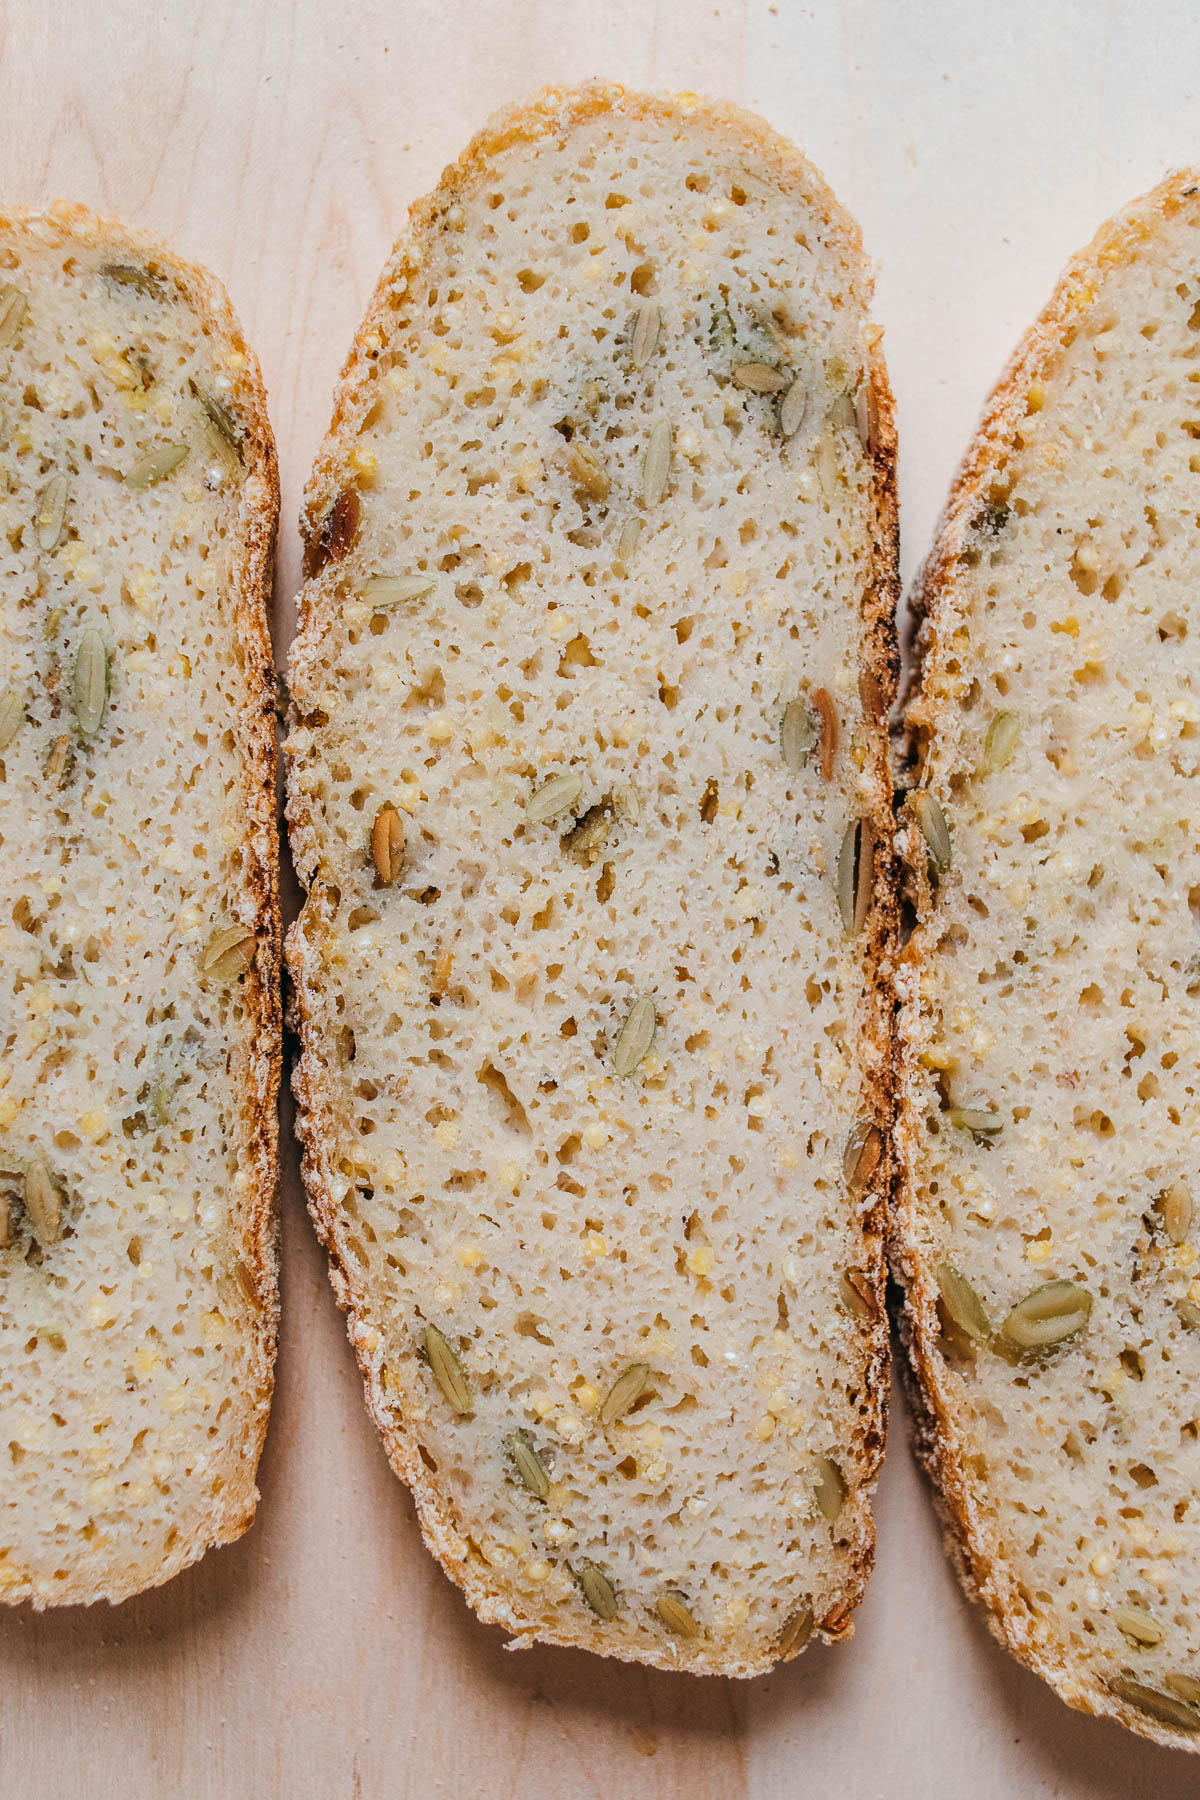 Overhead image of slices of gluten free sourdough bread to show airy texture.